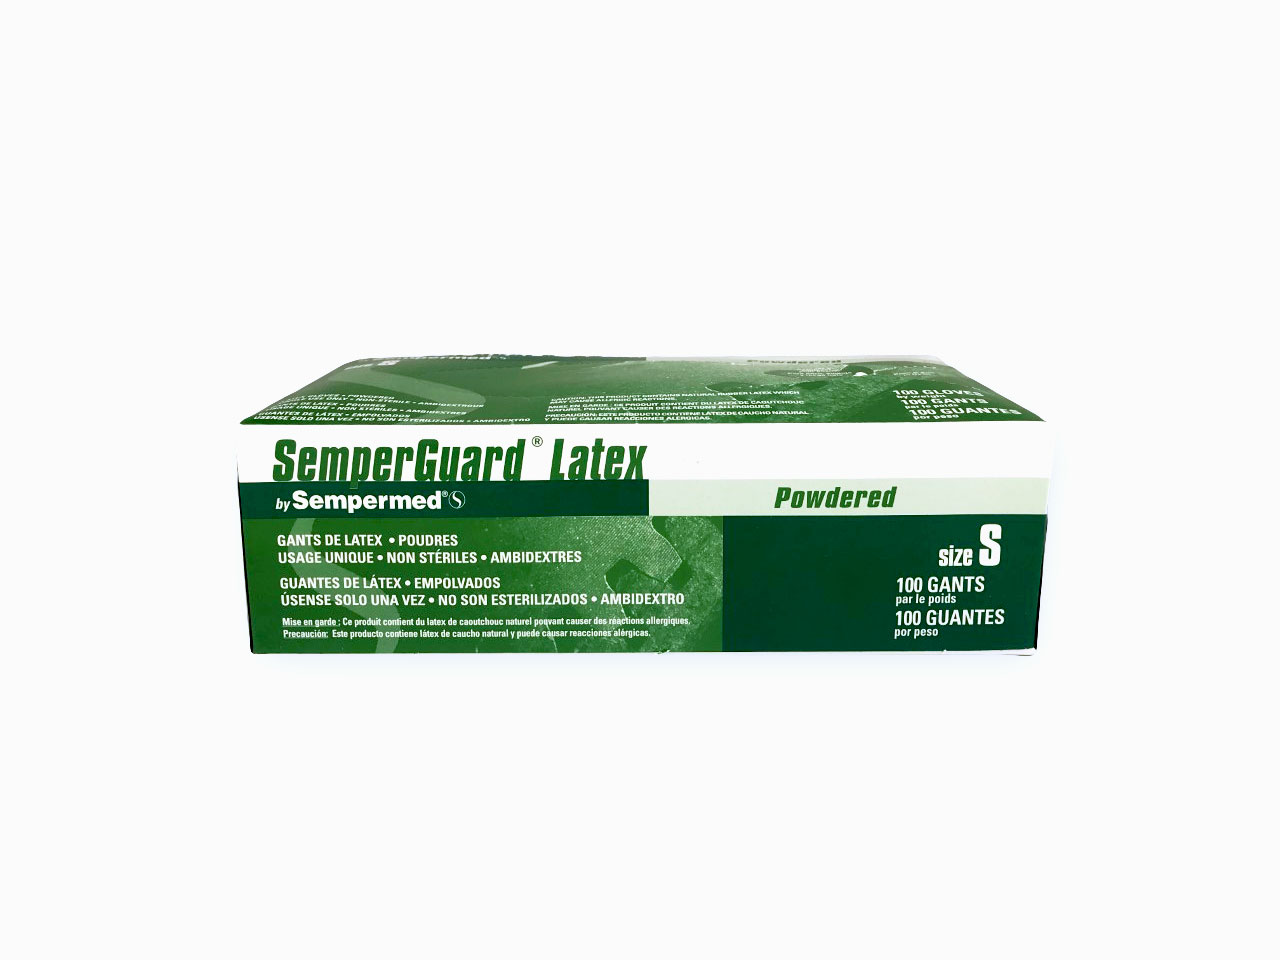 Selling Small Semperguard Latex Gloves